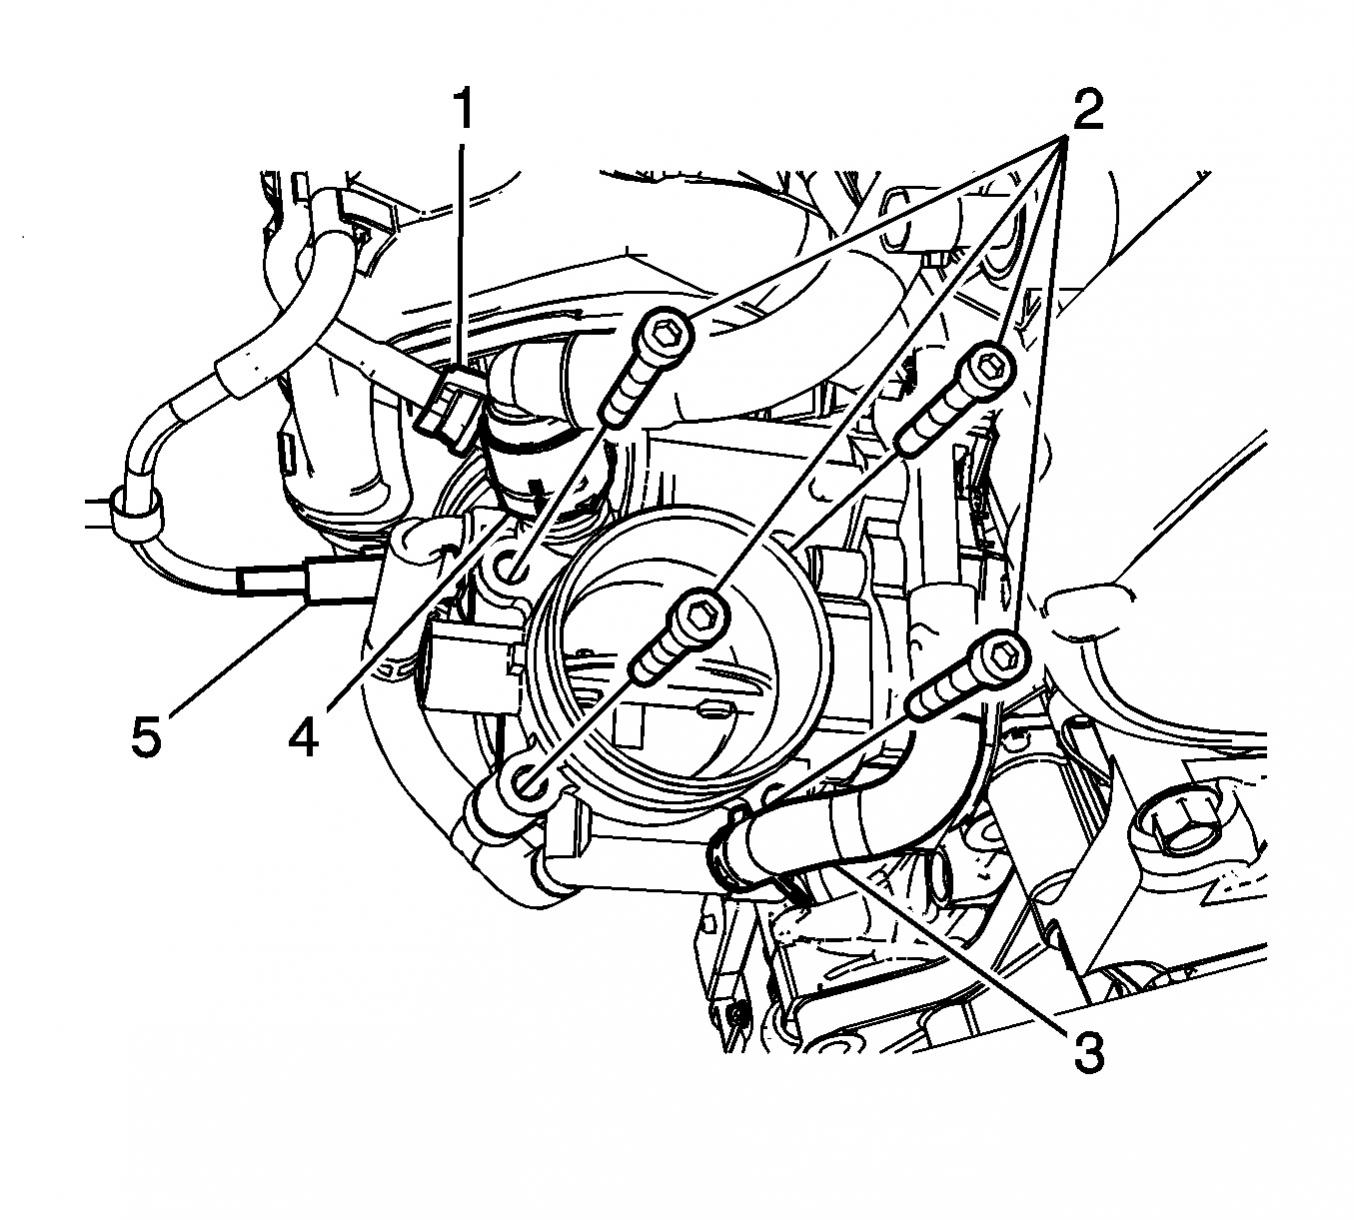 2004 Cavalier Engine Diagram. Wiring. Wiring Diagram Images